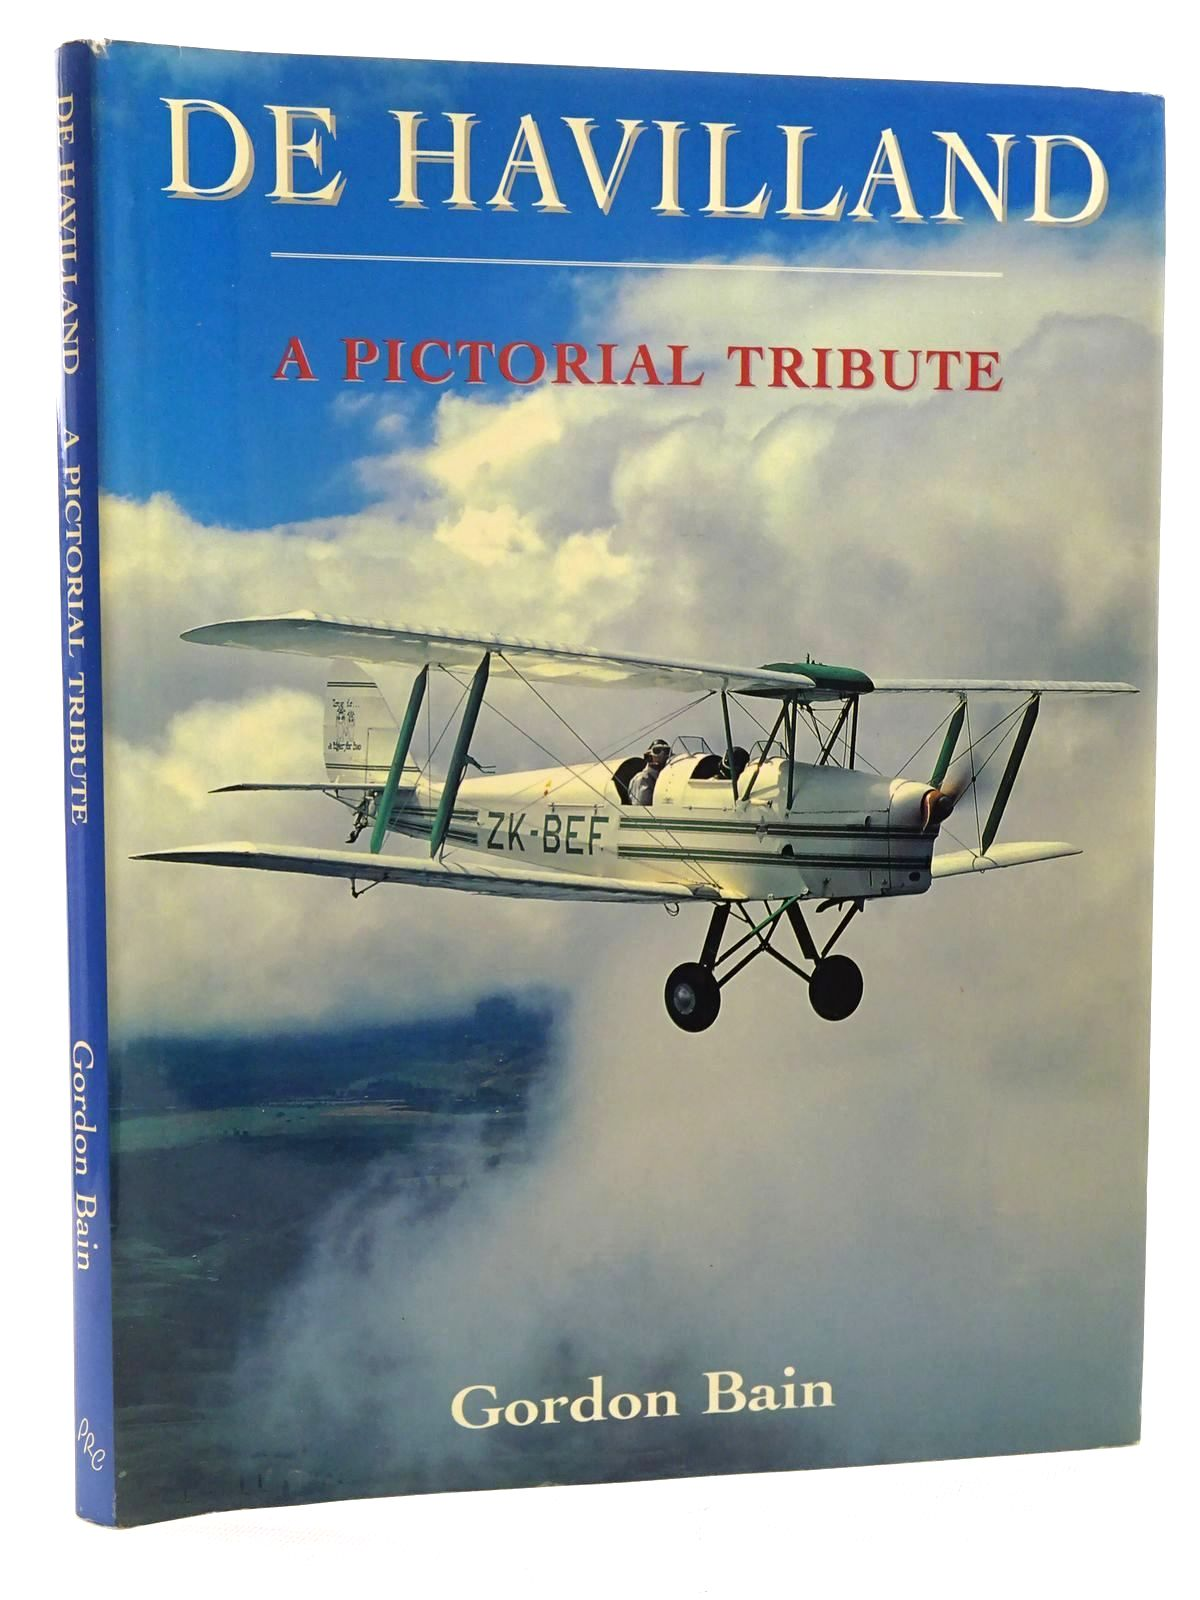 Photo of DE HAVILLAND A PICTORIAL TRIBUTE written by Bain, Gordon published by Promotional Reprint Company (STOCK CODE: 1610481)  for sale by Stella & Rose's Books